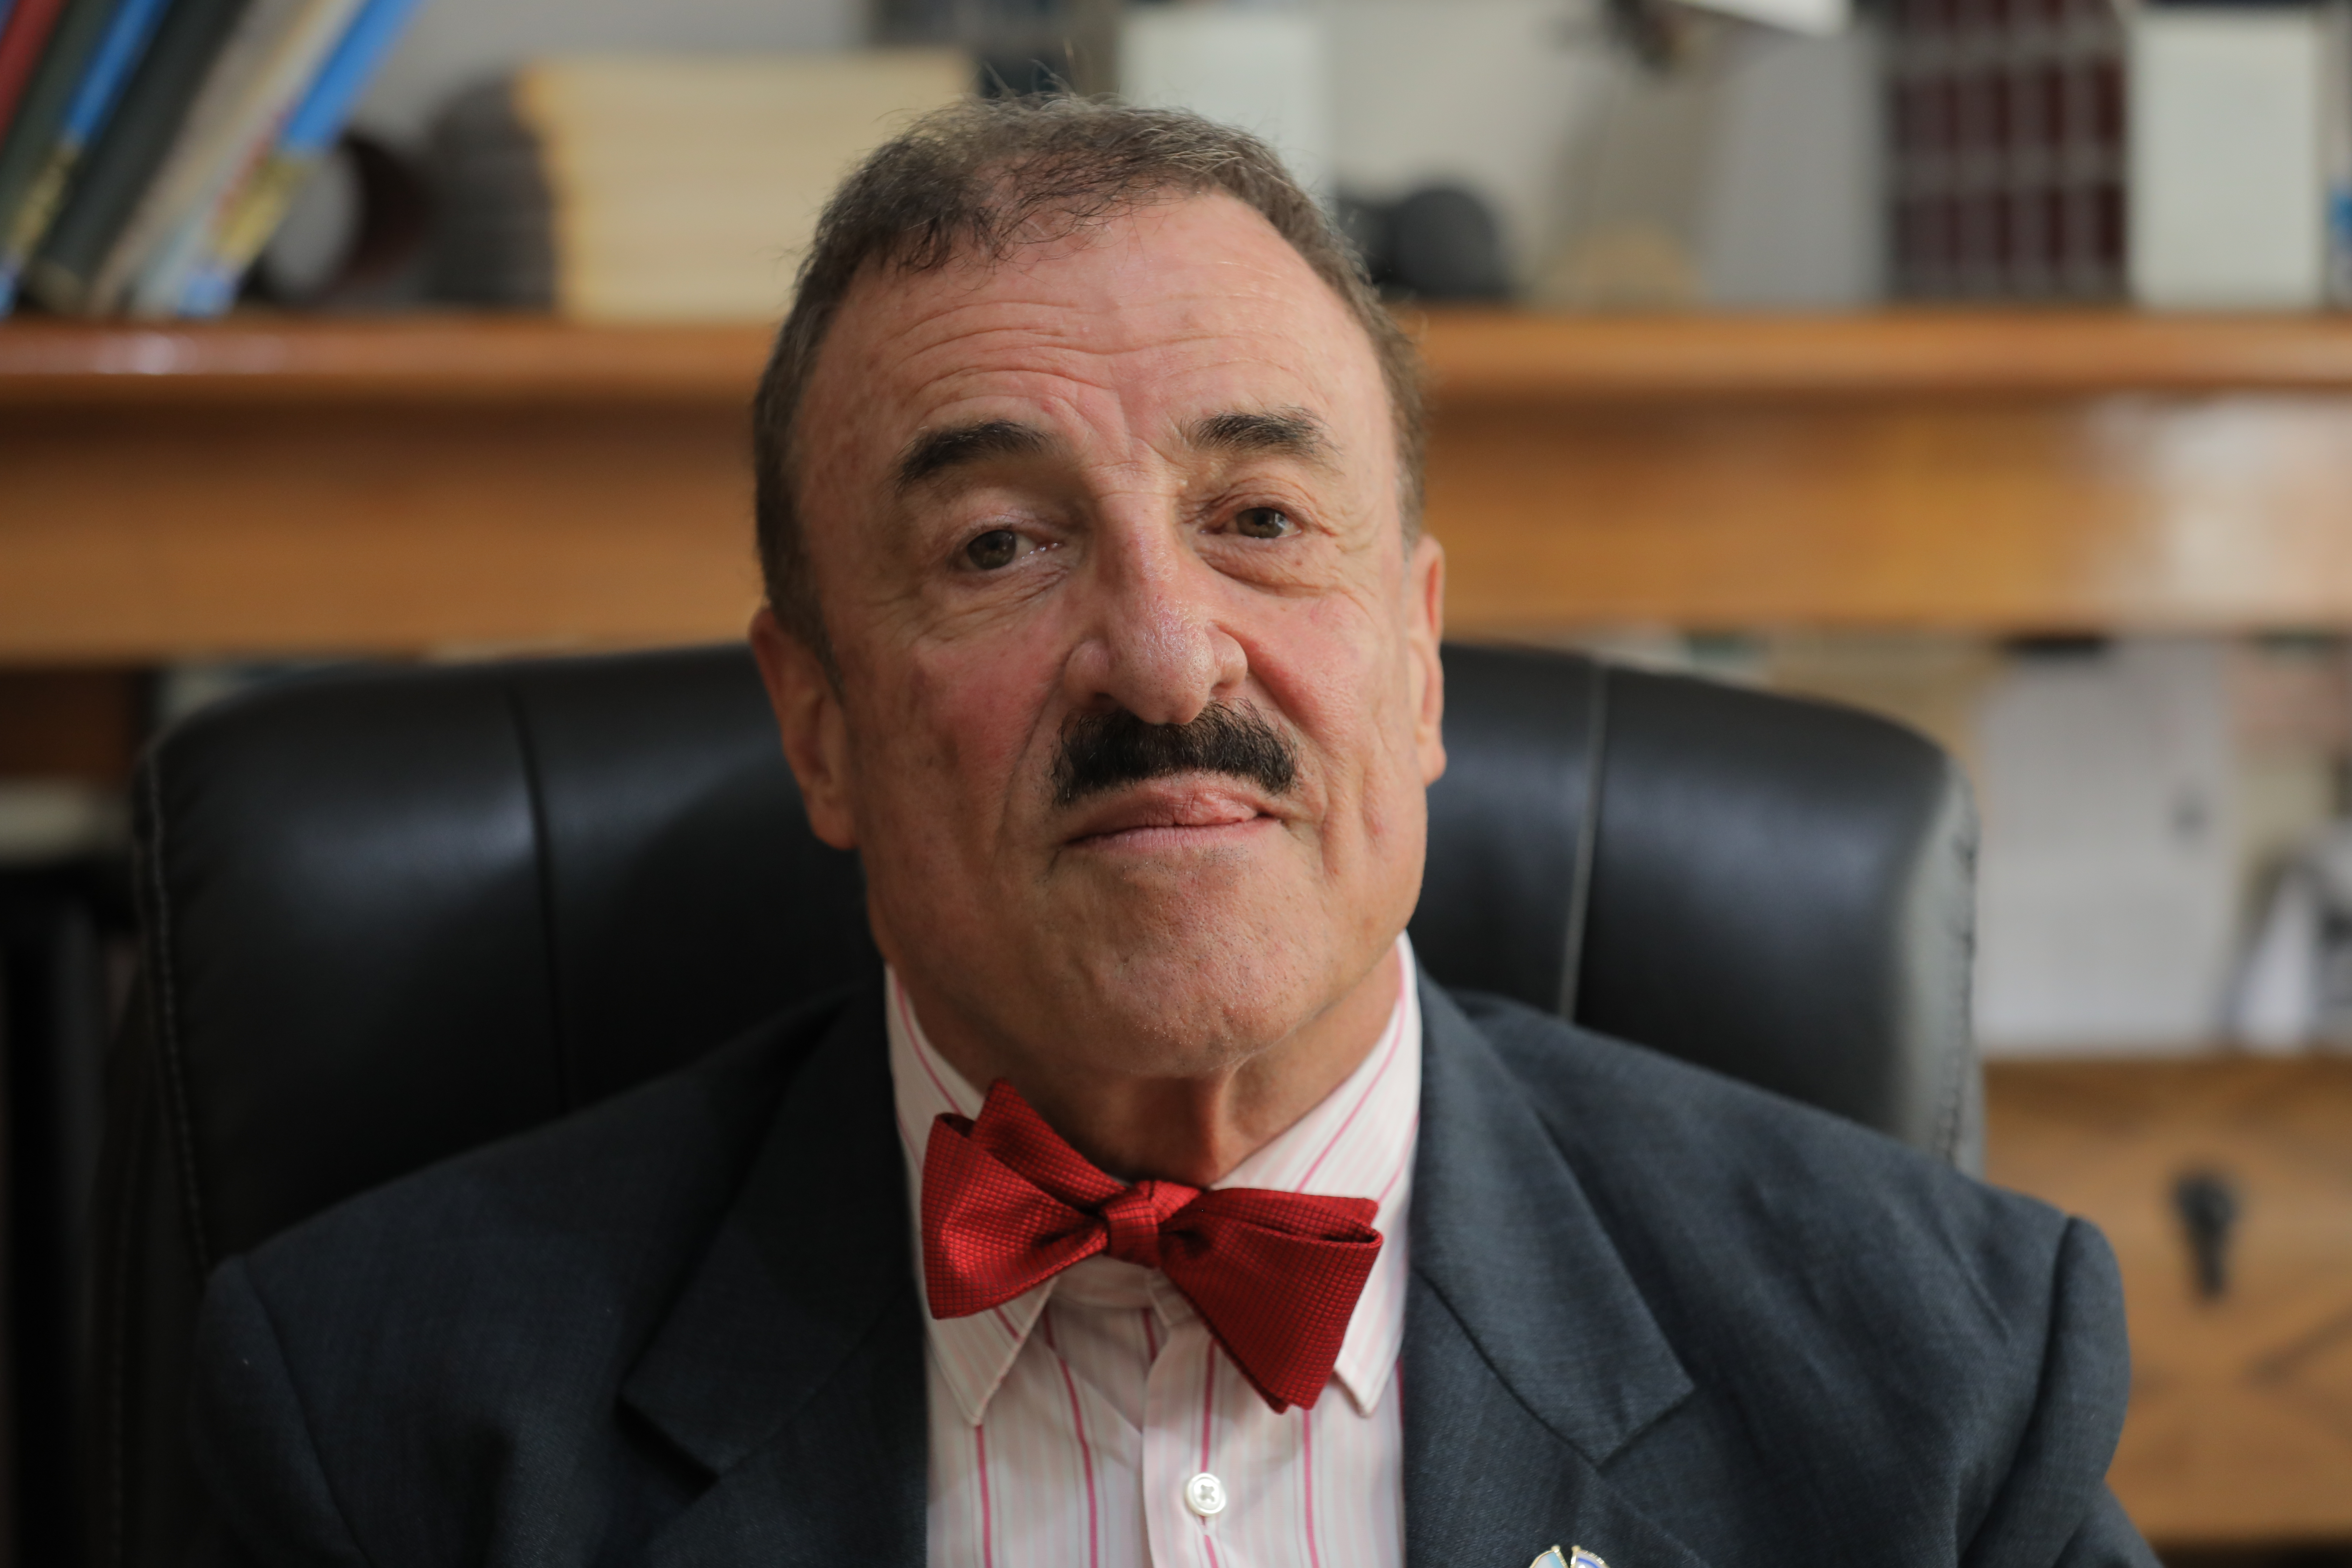 Guatemalan Congressman Fernando Linares Beltranena is behind legislation that would give amnesty to perpetrators convicted of serious war crimes in the country's civil conflict. (Ousama Farag/CBC)